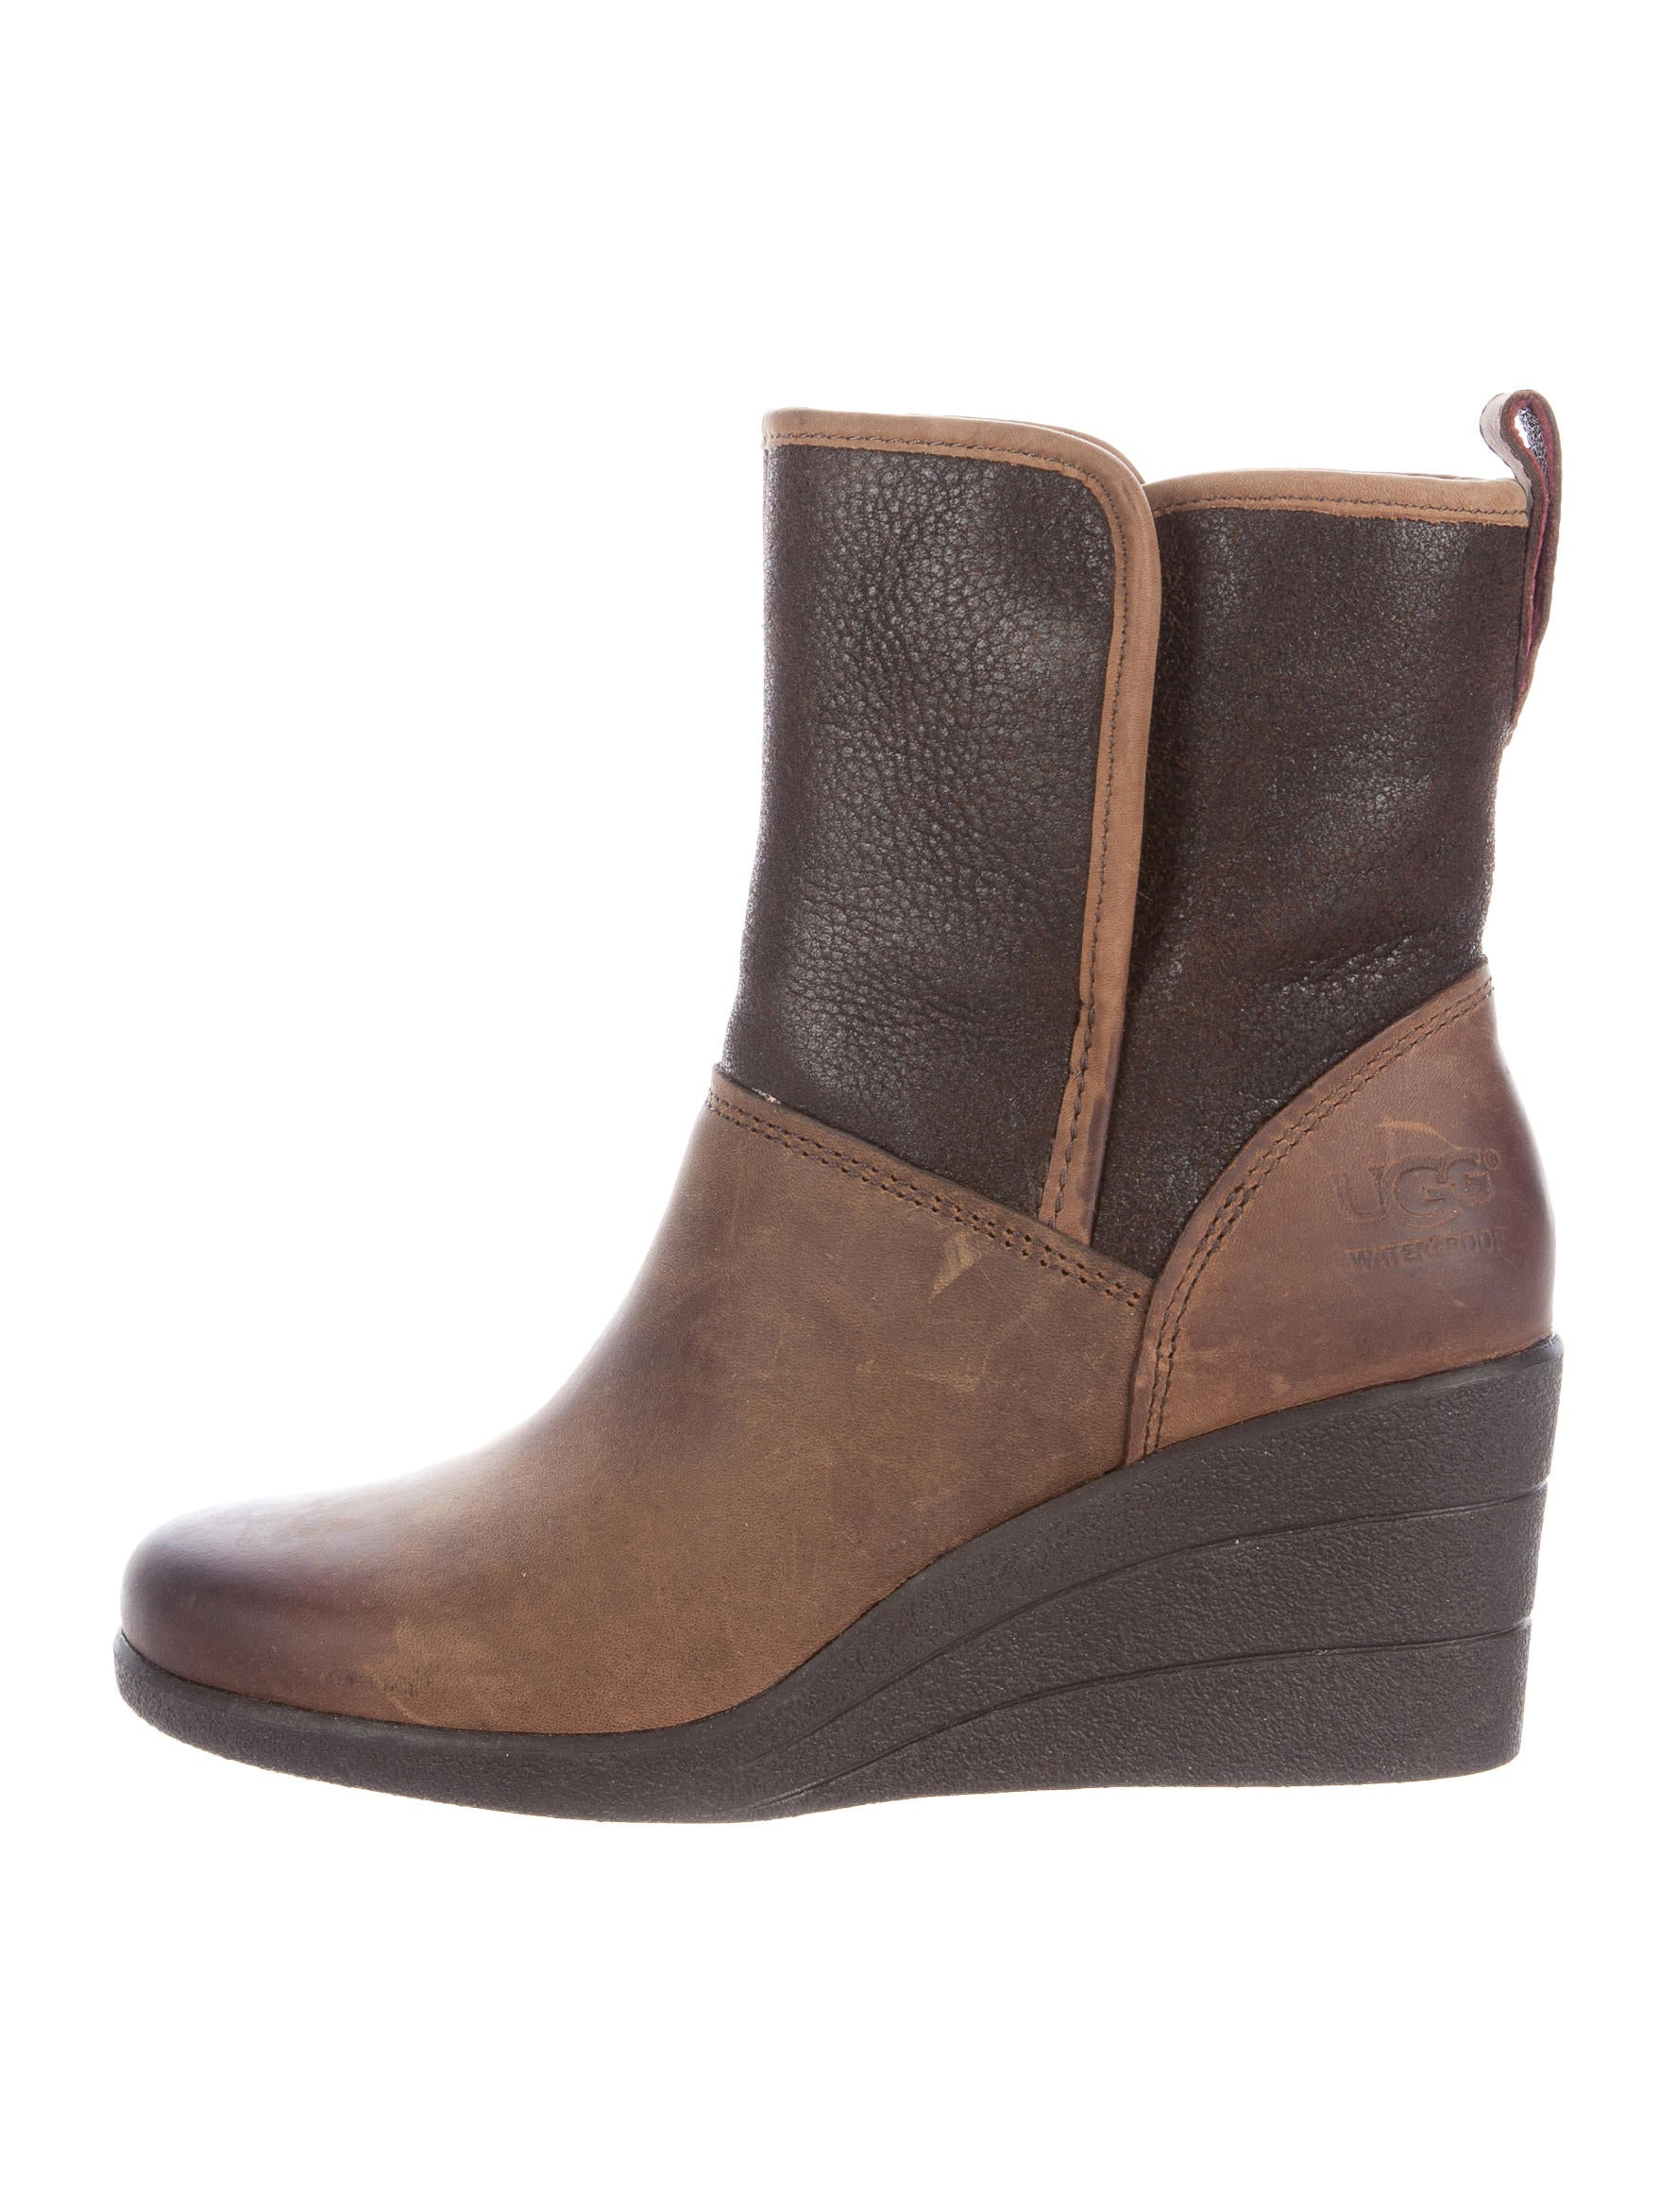 e13396c59e9 UGG Australia Renatta Wedge Ankle Boots - Shoes - WUUGG22329